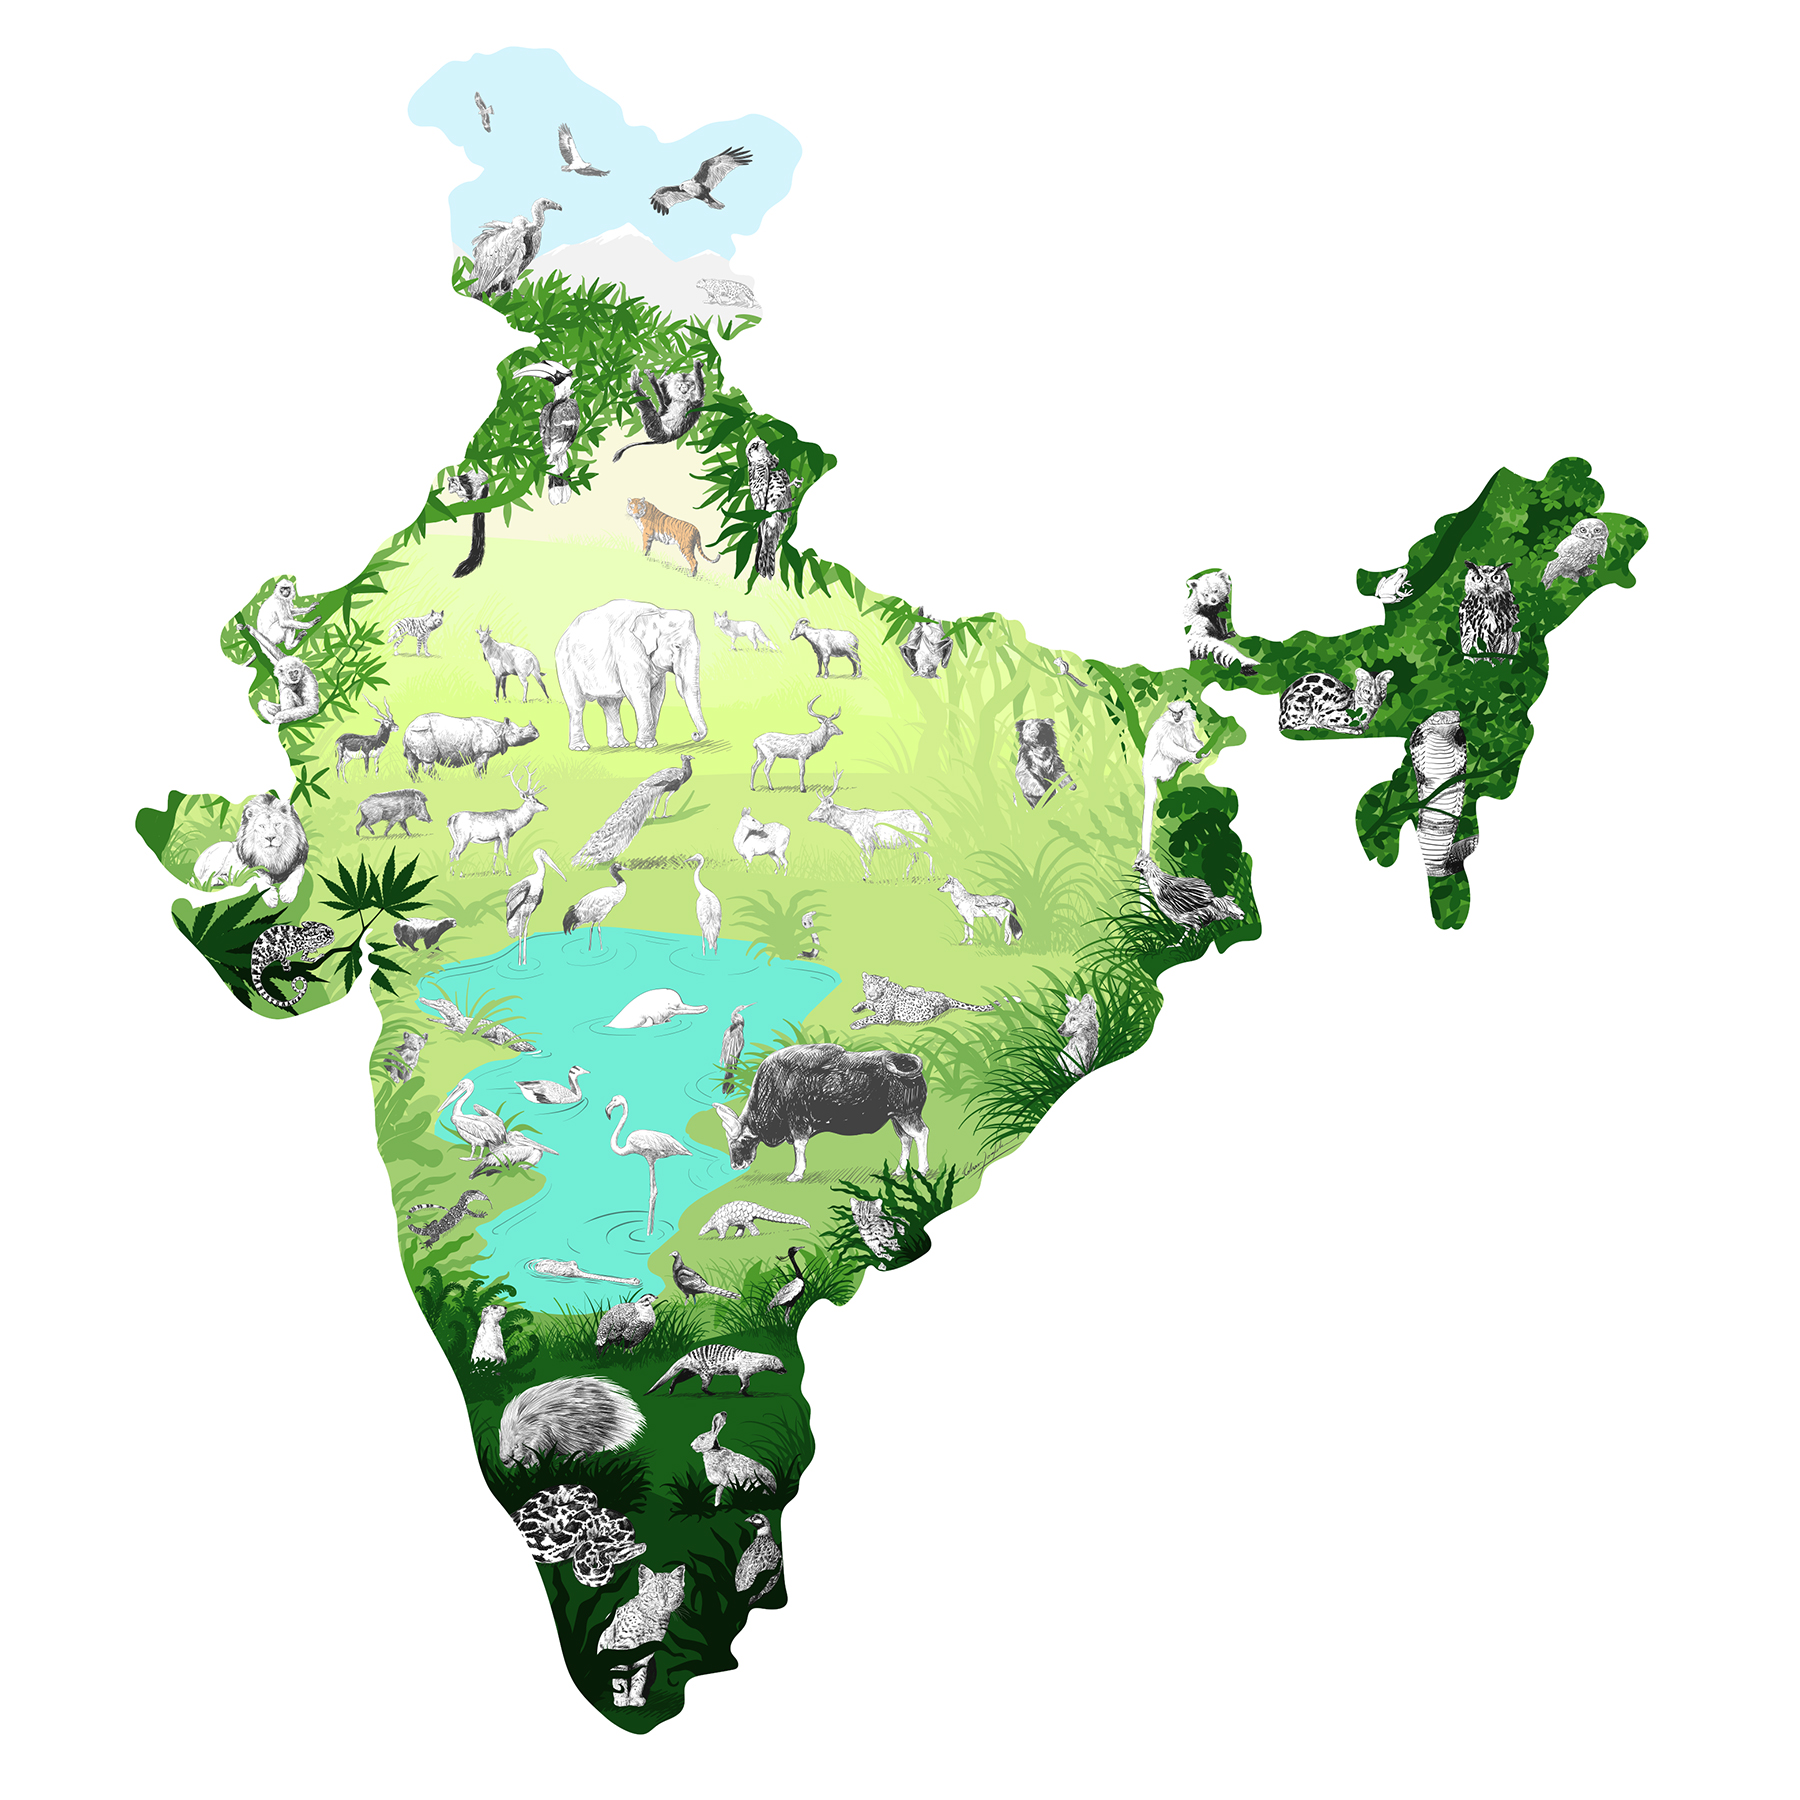 """1972 : """"Indian Legislature recognizes the importance and beauty of its country's biodiversity with the Wildife Protection Act."""" ~ Rohan Joglekar"""